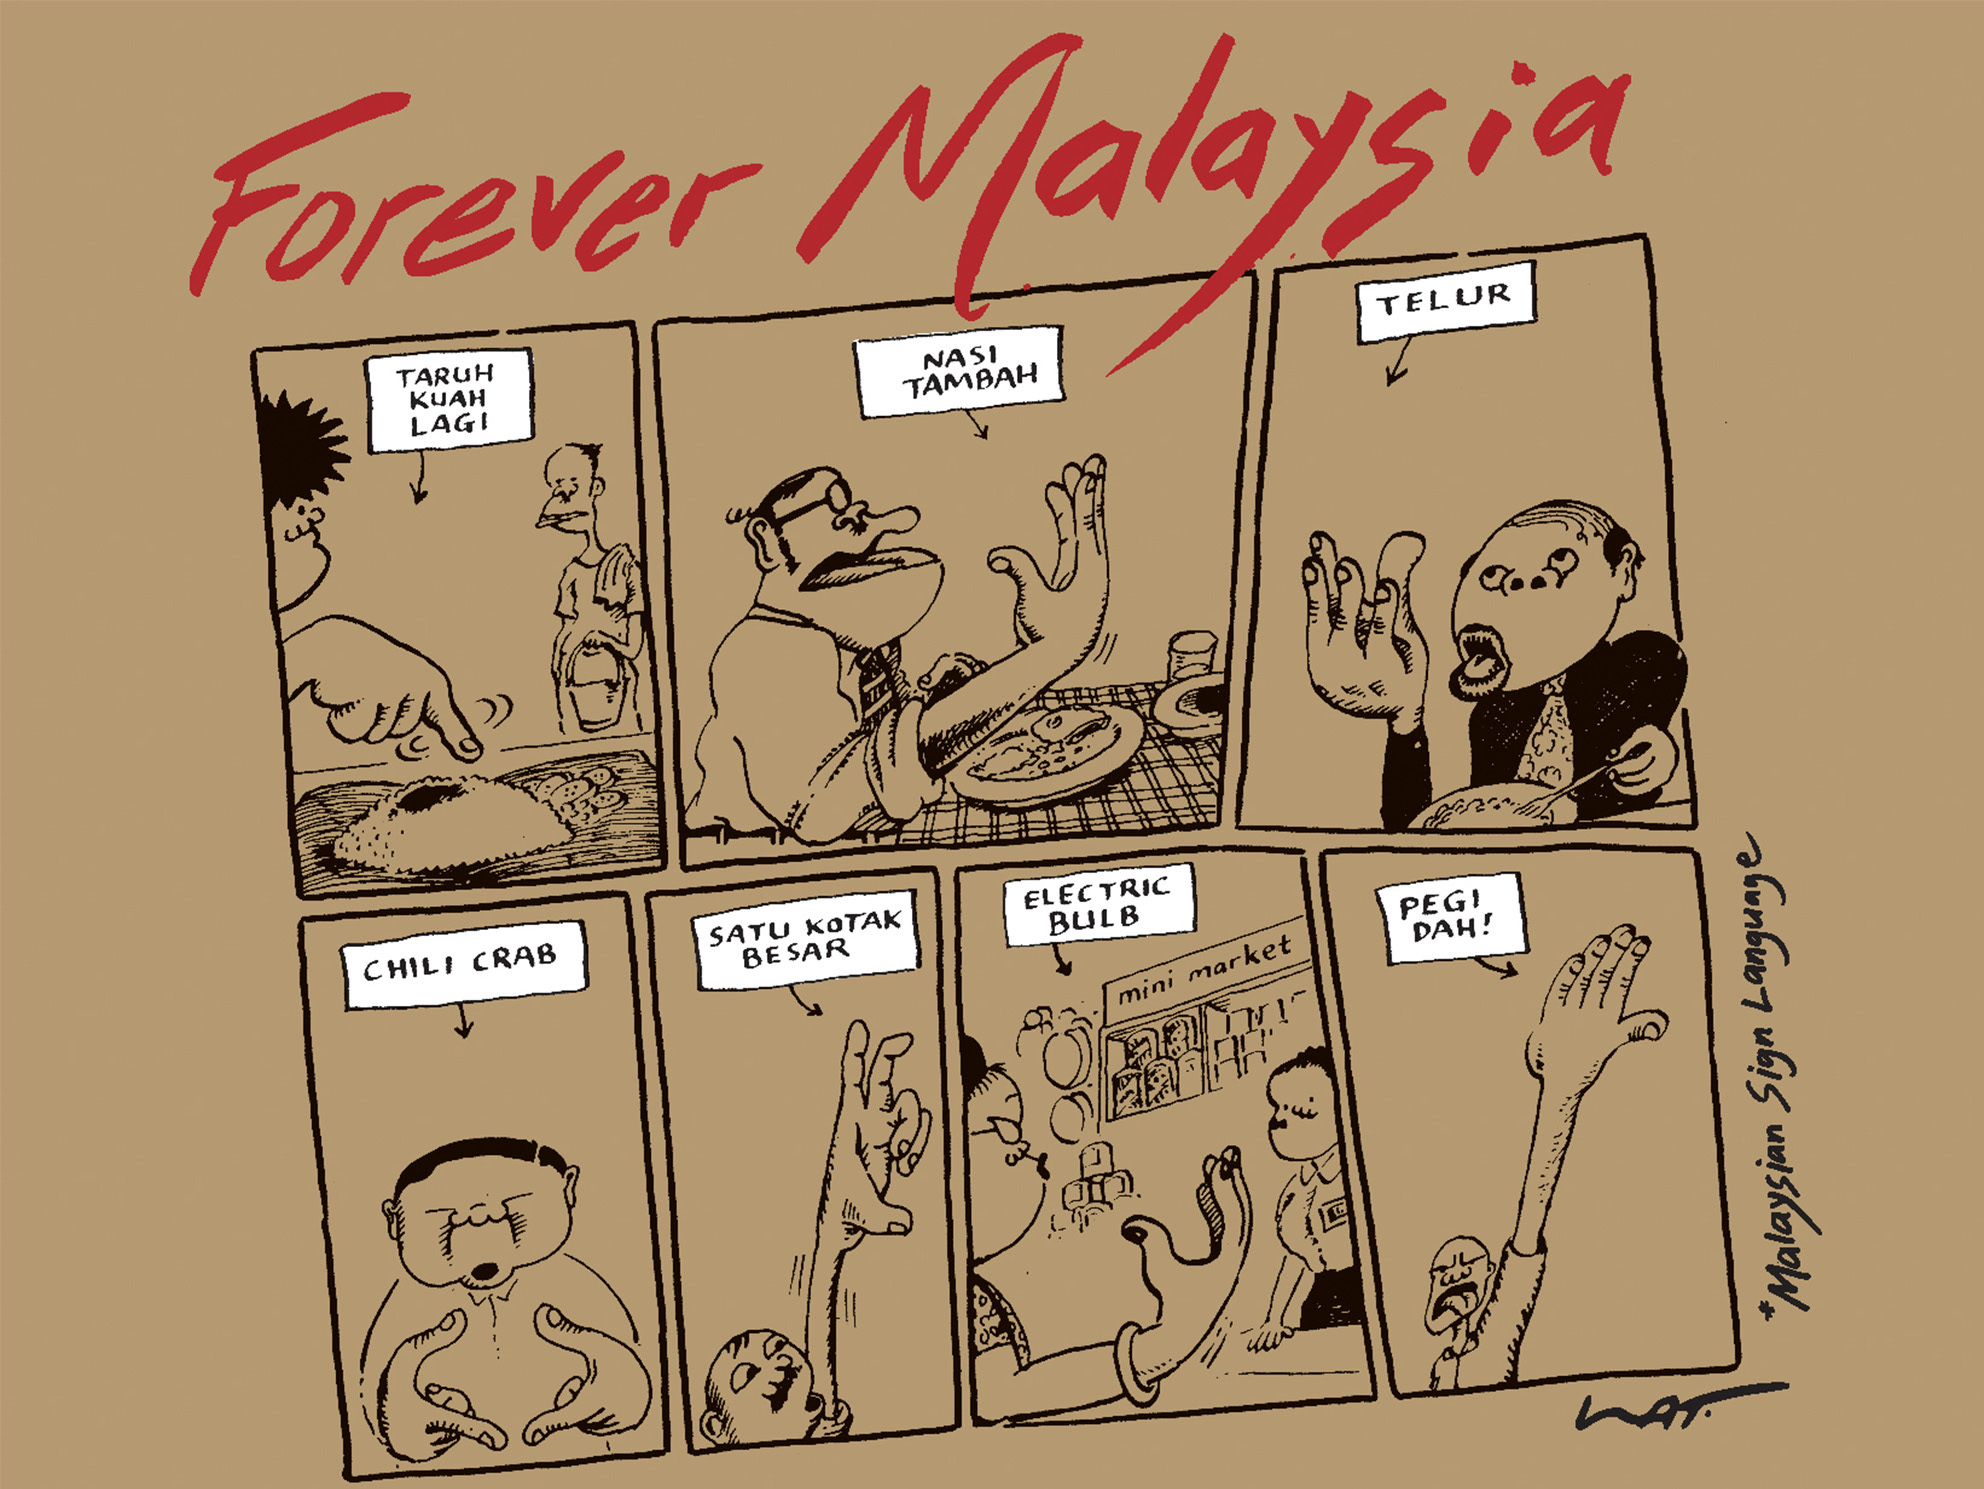 Forever Malaysia.jpg